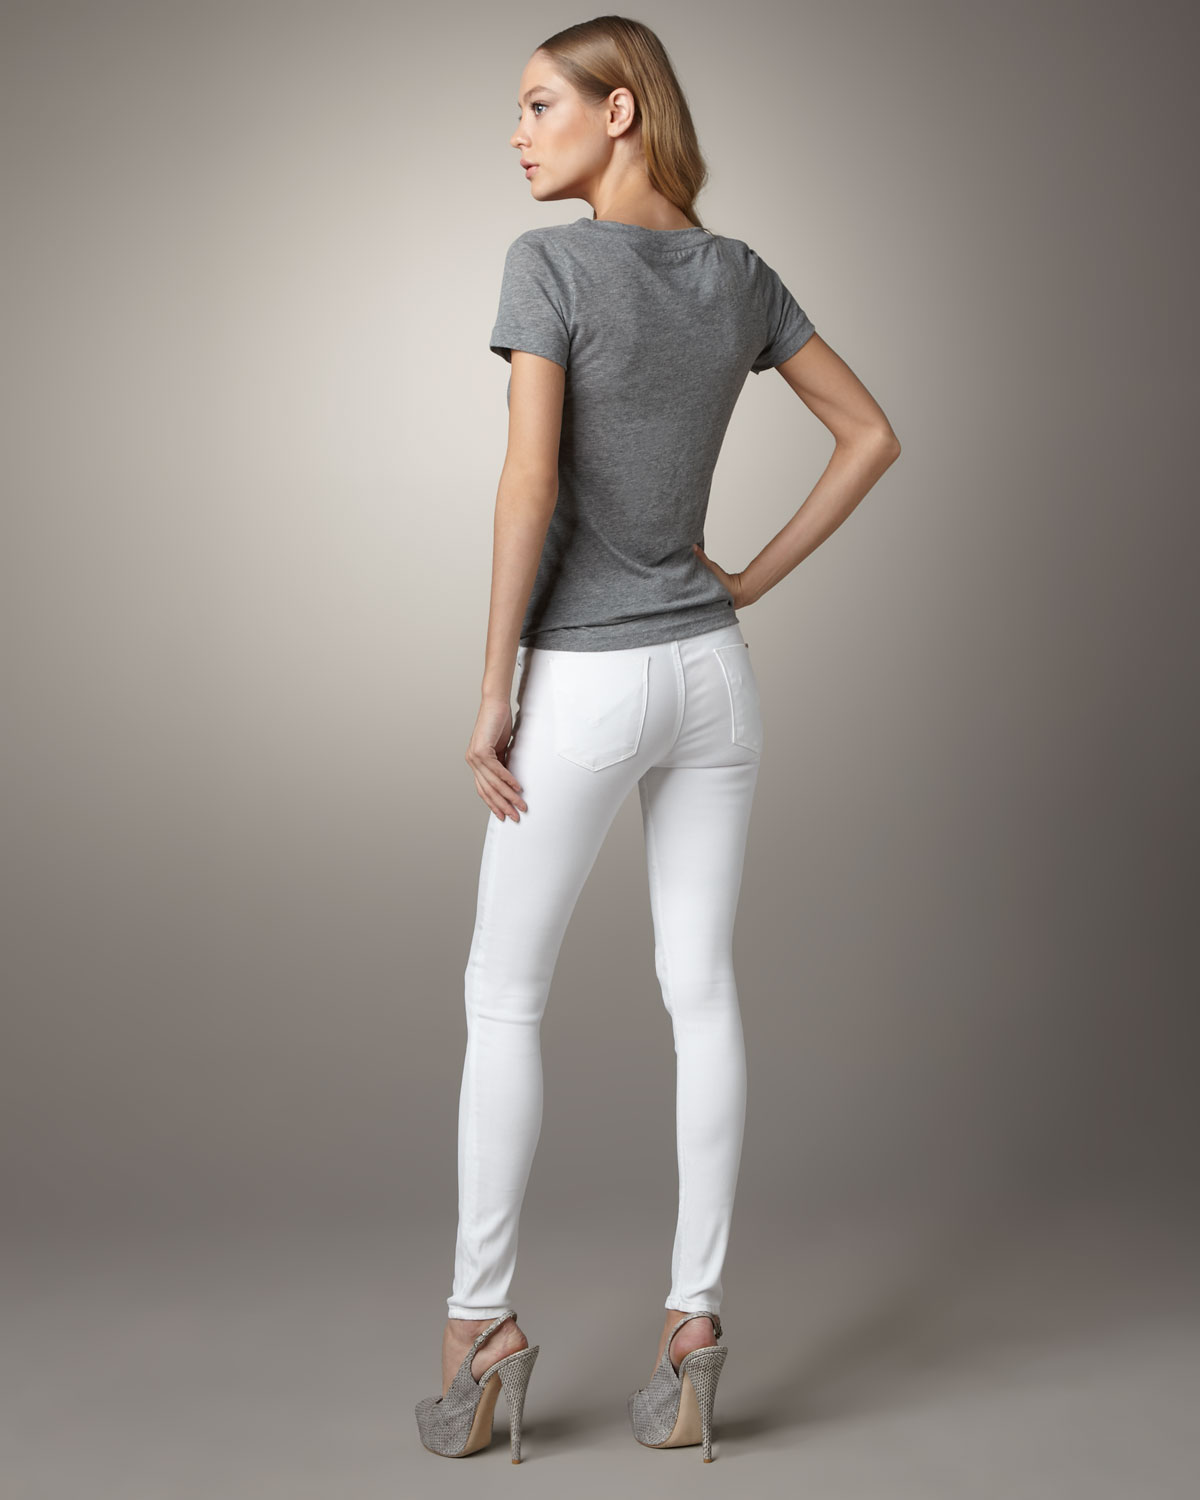 Hudson jeans Nico Mid-rise Super Skinny Jeans, White in White | Lyst